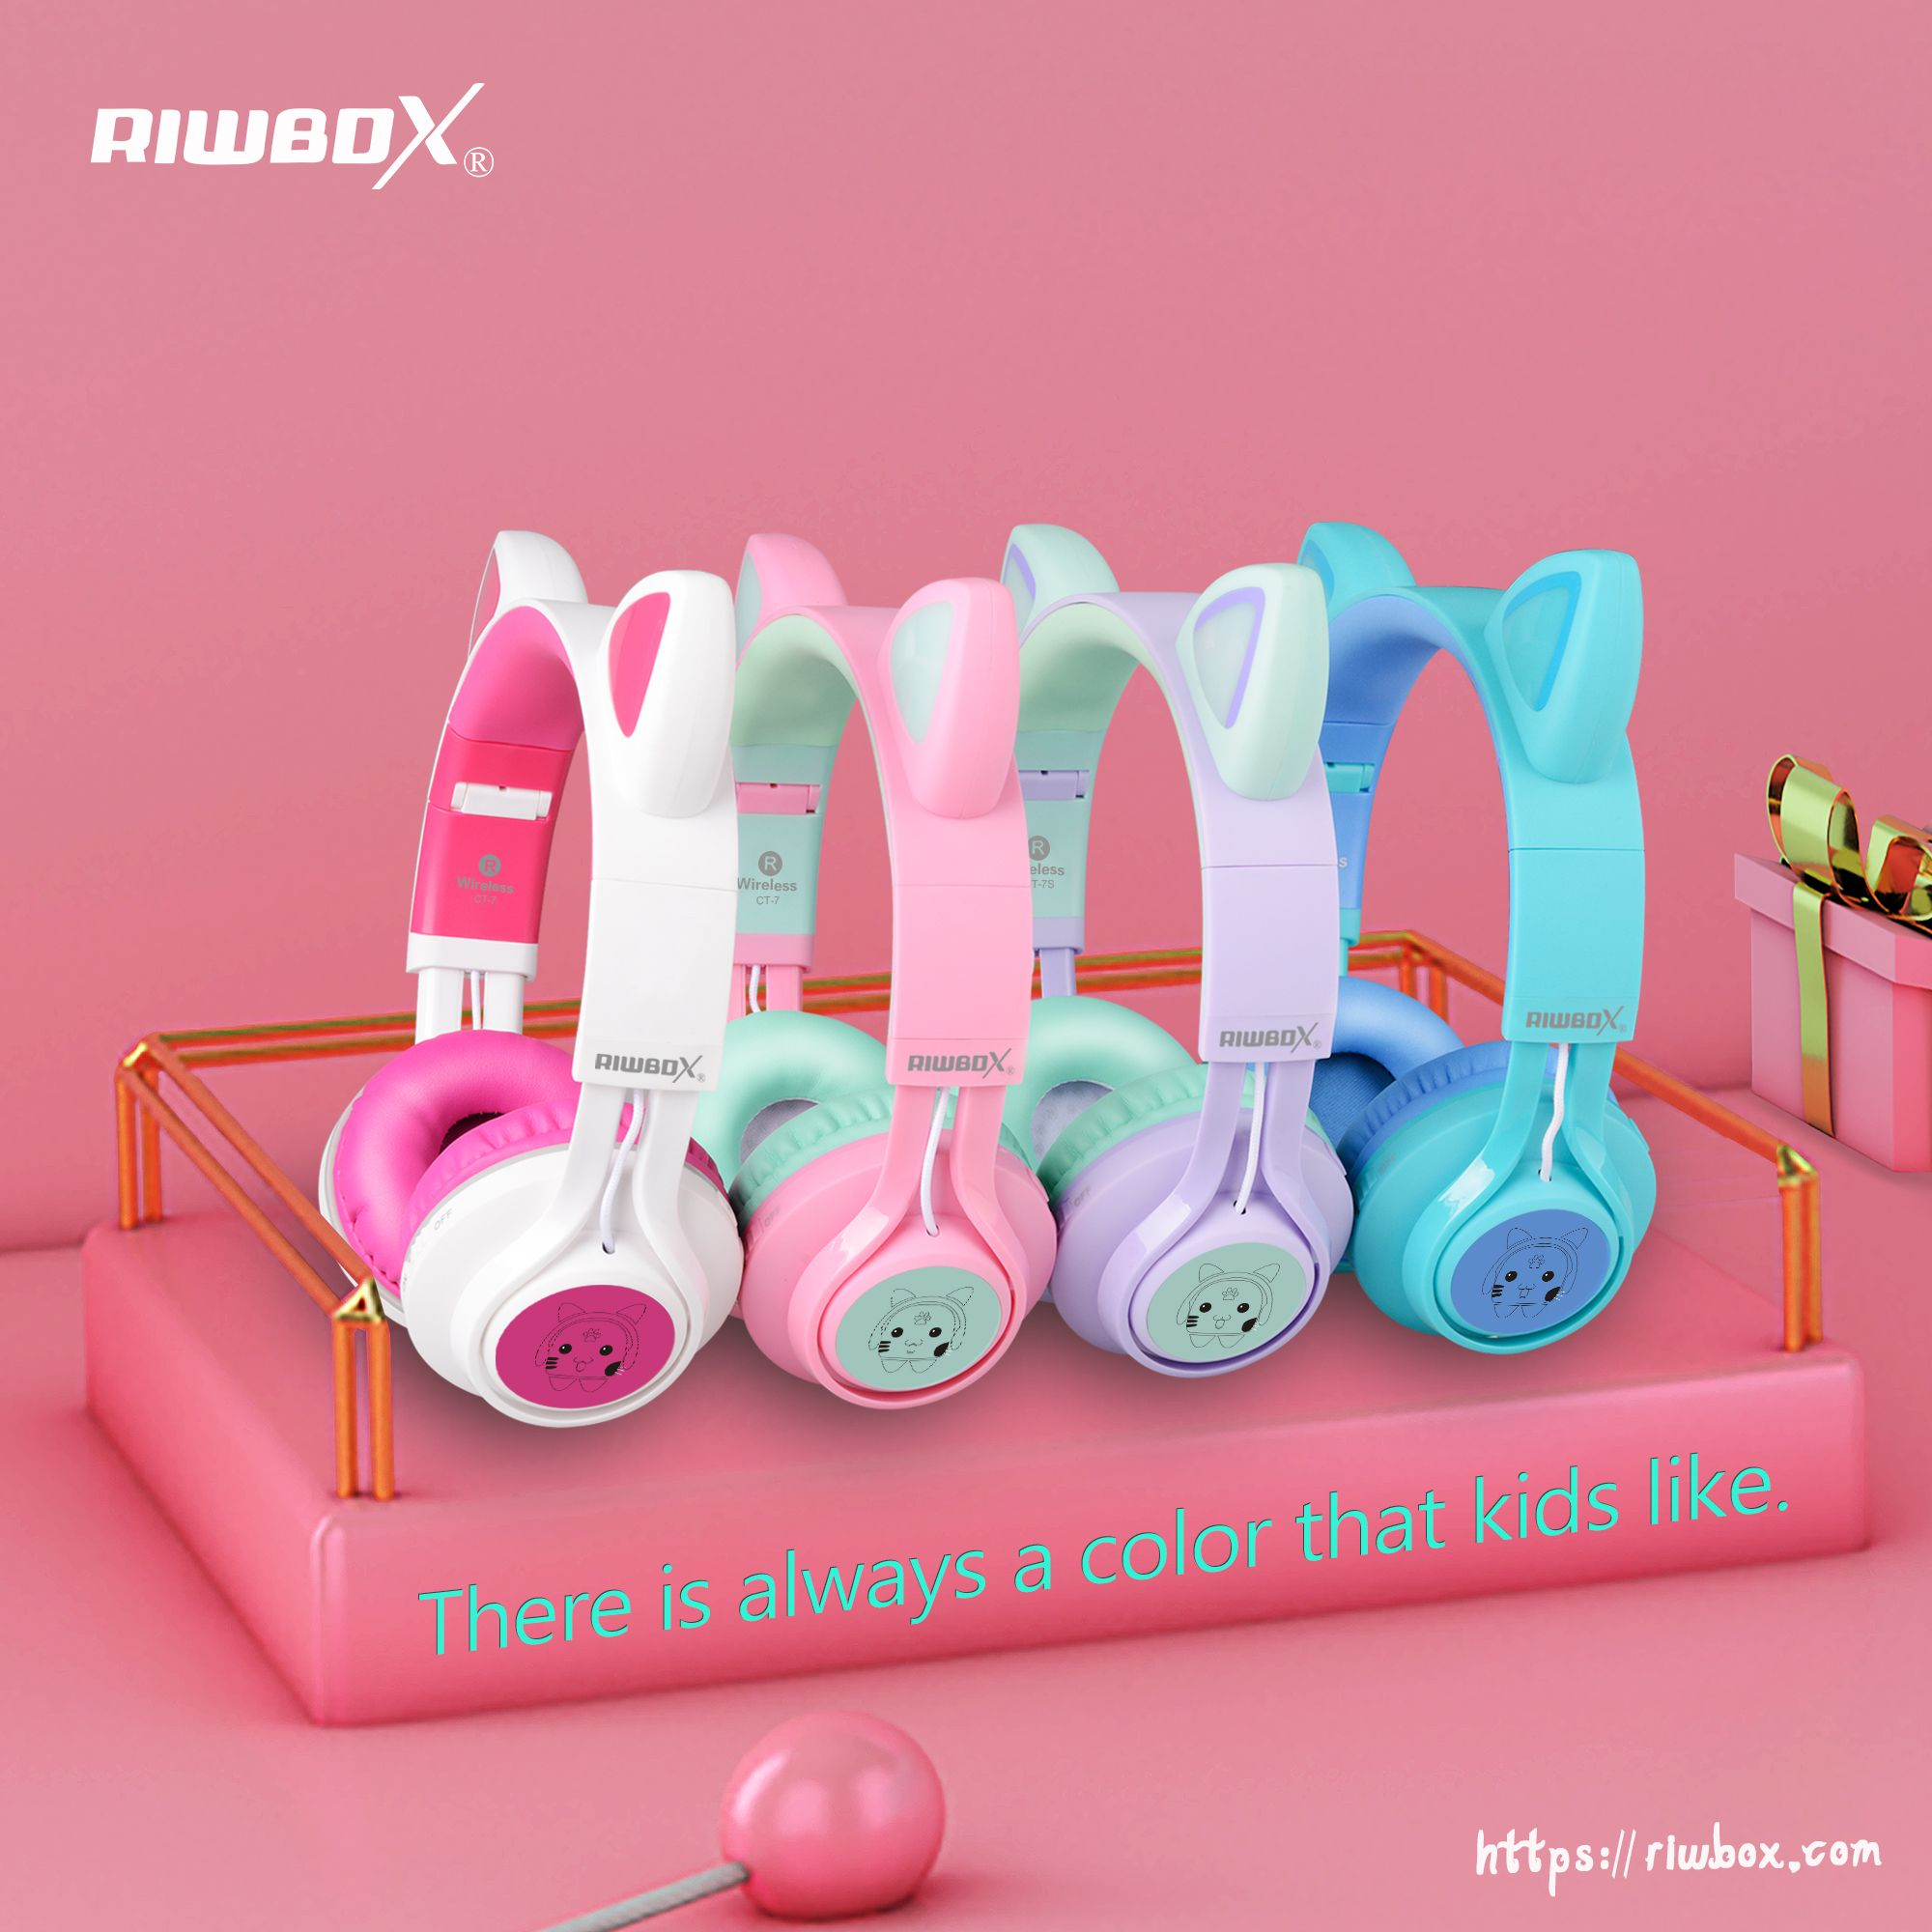 Kids Headphones For Xmas Gift Kids Headphones Cute Headphones Cat Headphones